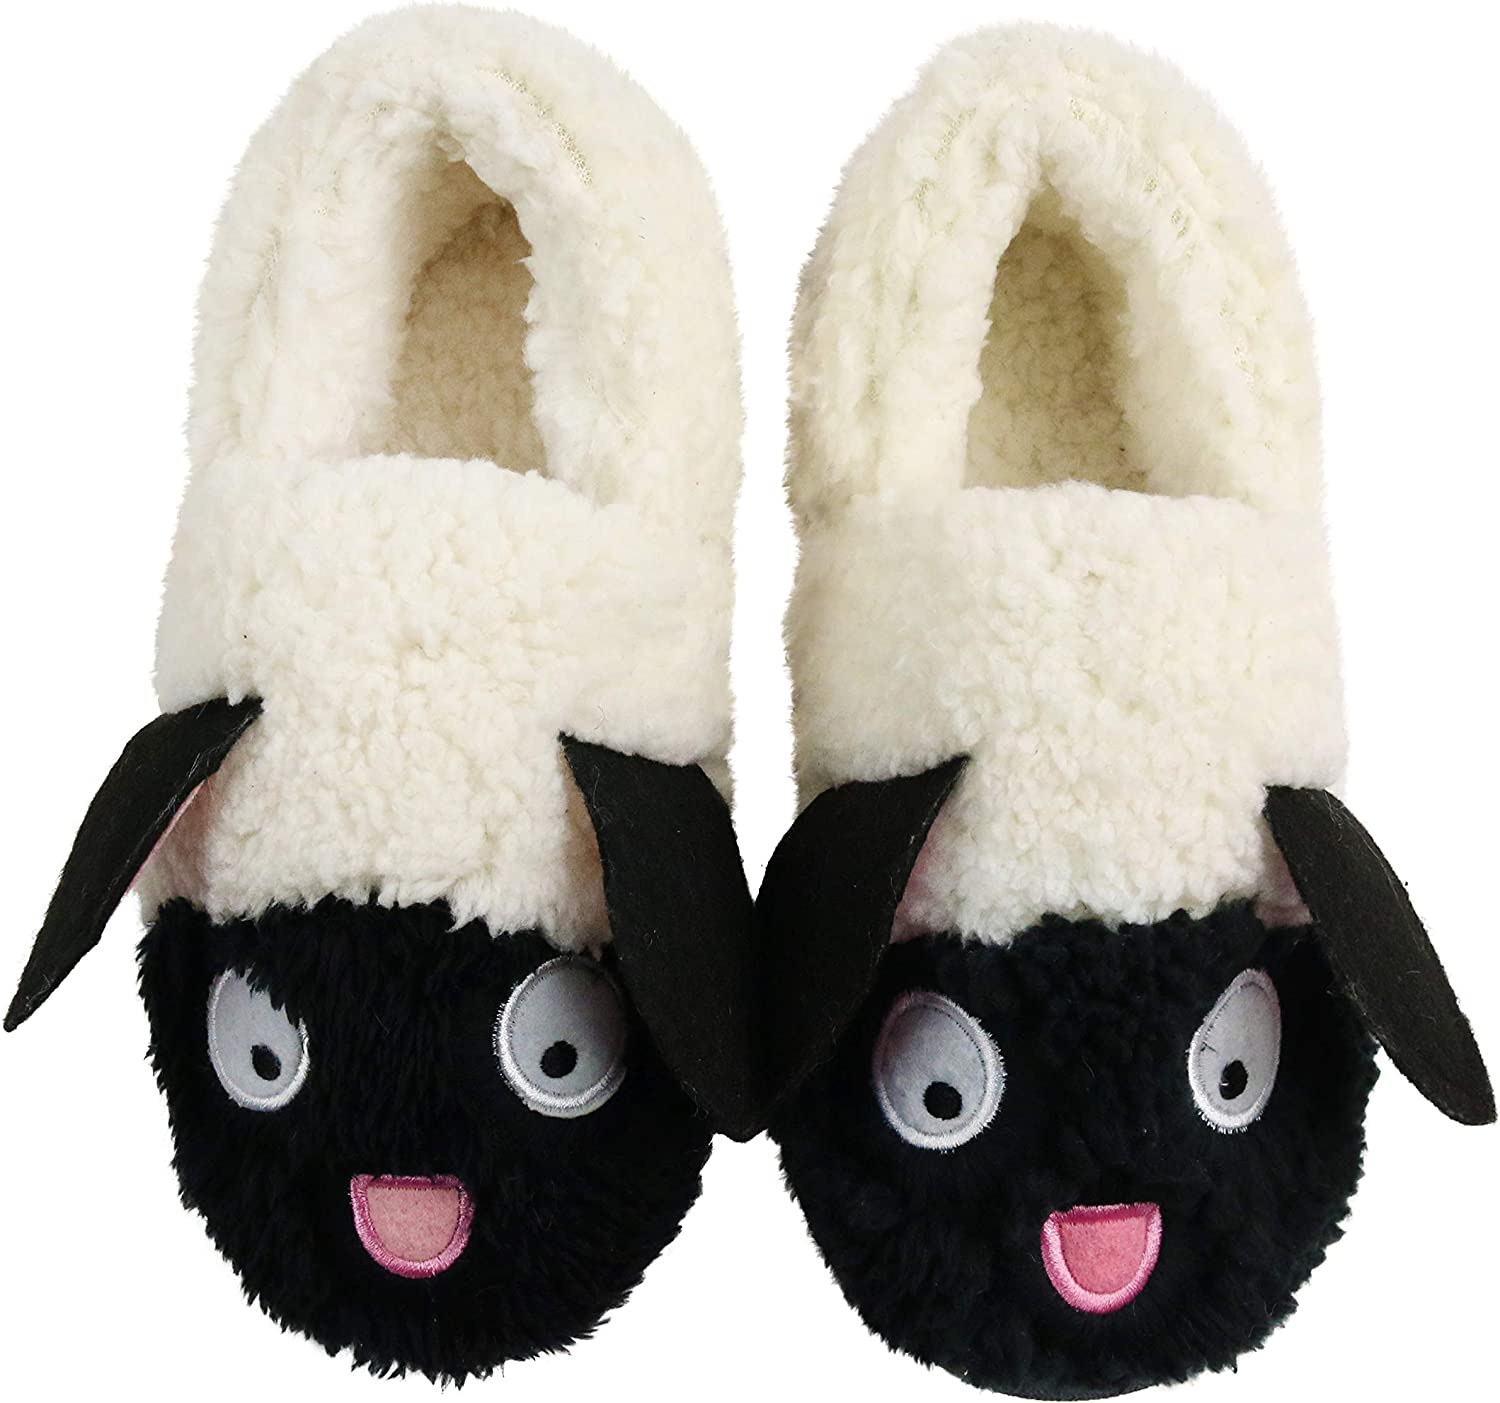 Komyufa Fuzzy Lamb Sheep Animal Slippers for Women Non-Slip Fluffy Memory Foam Cozy Home Shoes with Plush Fleece Lining Indoor Outdoor Slippers